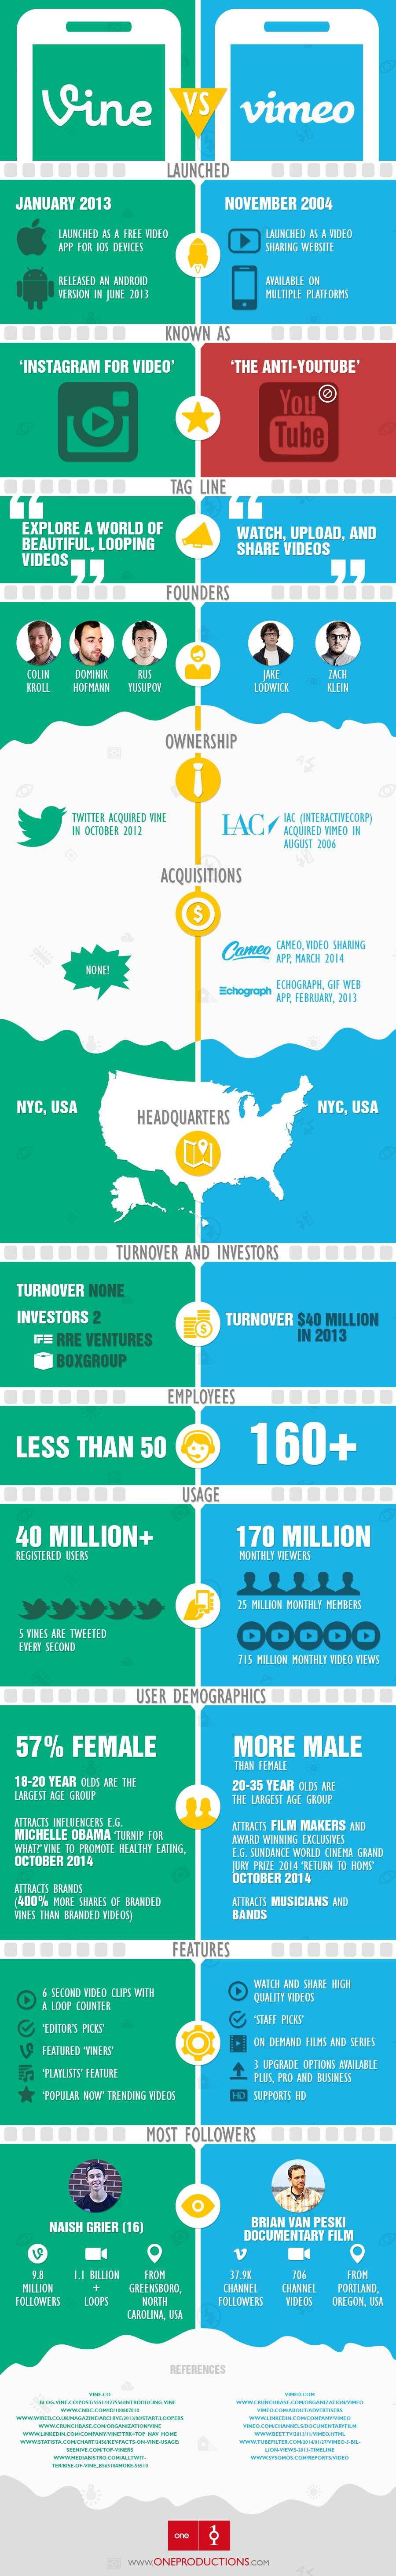 Vine Vs. Vimeo, Launch to Latest Stats - #Infographic #socialmedia